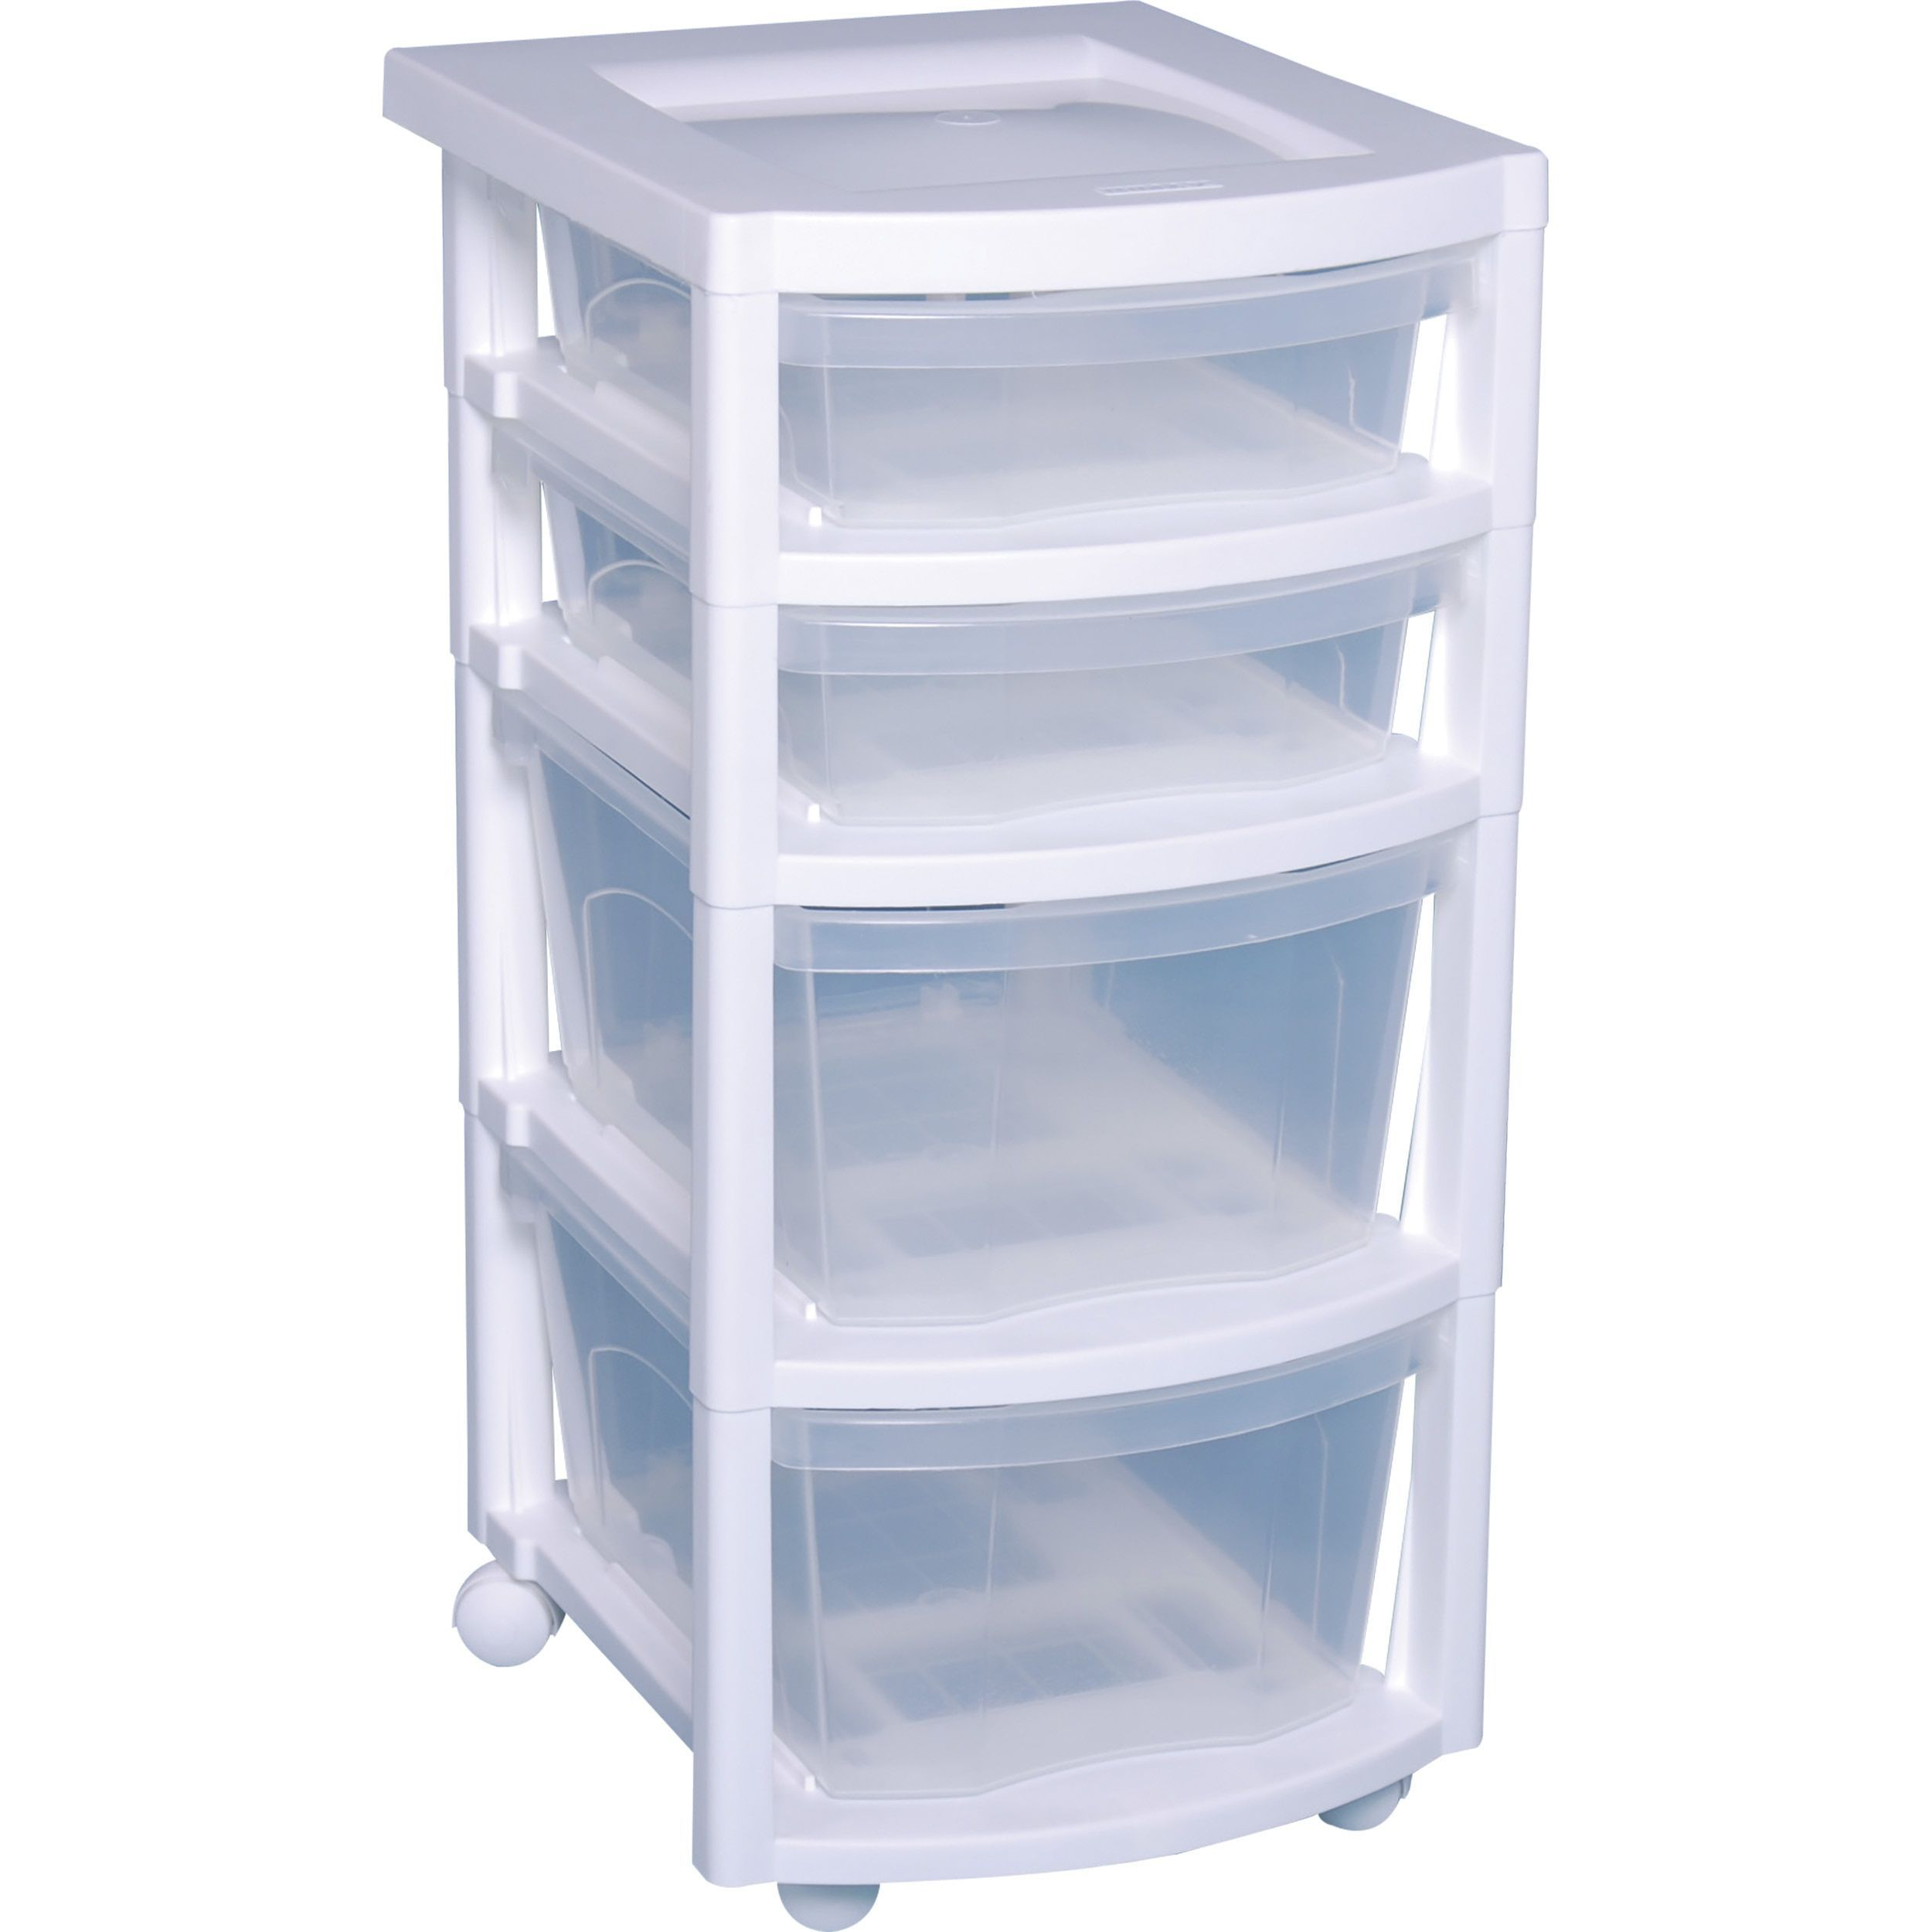 mr drawer drawers newmatic pvc cart conditional storage universal